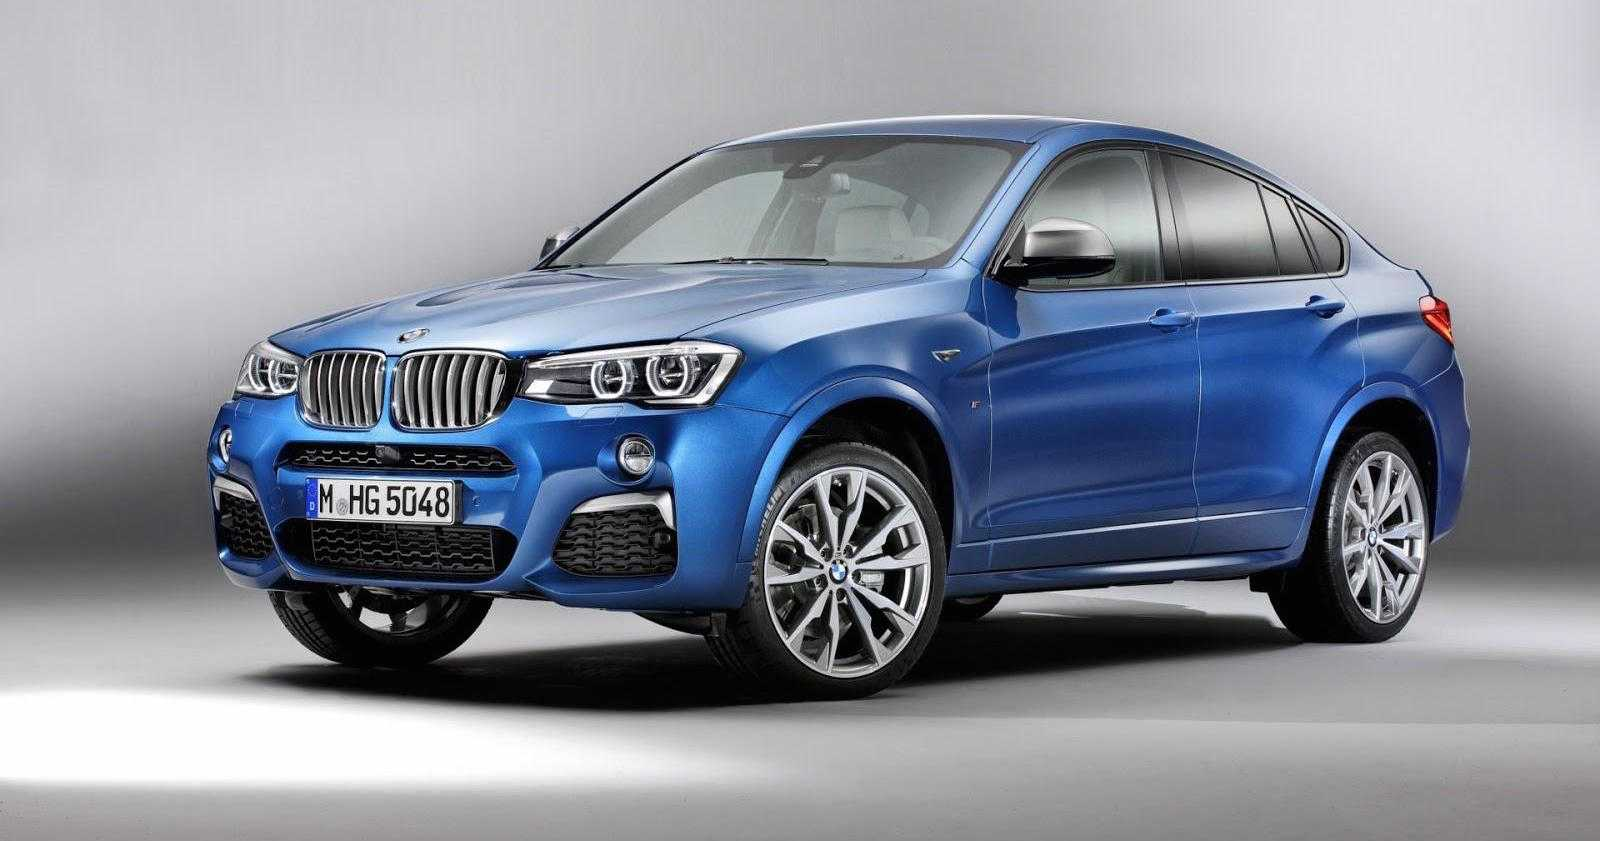 2017 bmw x4 m40i leaked images show first glimpse at interior. Black Bedroom Furniture Sets. Home Design Ideas